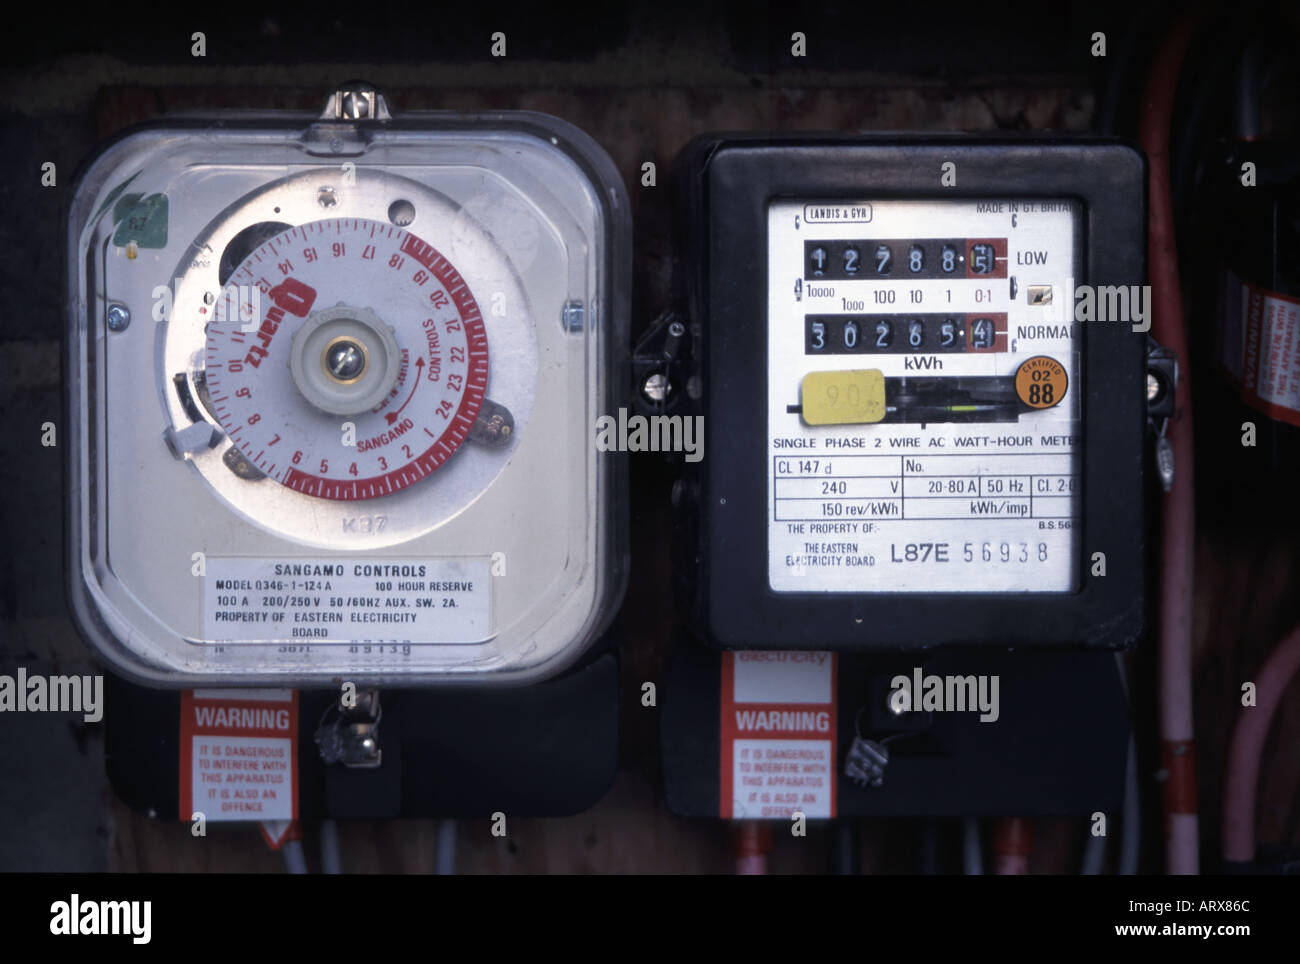 Clock used to stop and start economy time slots for recording off peak readings on adjacent domestic electricity meter - Stock Image